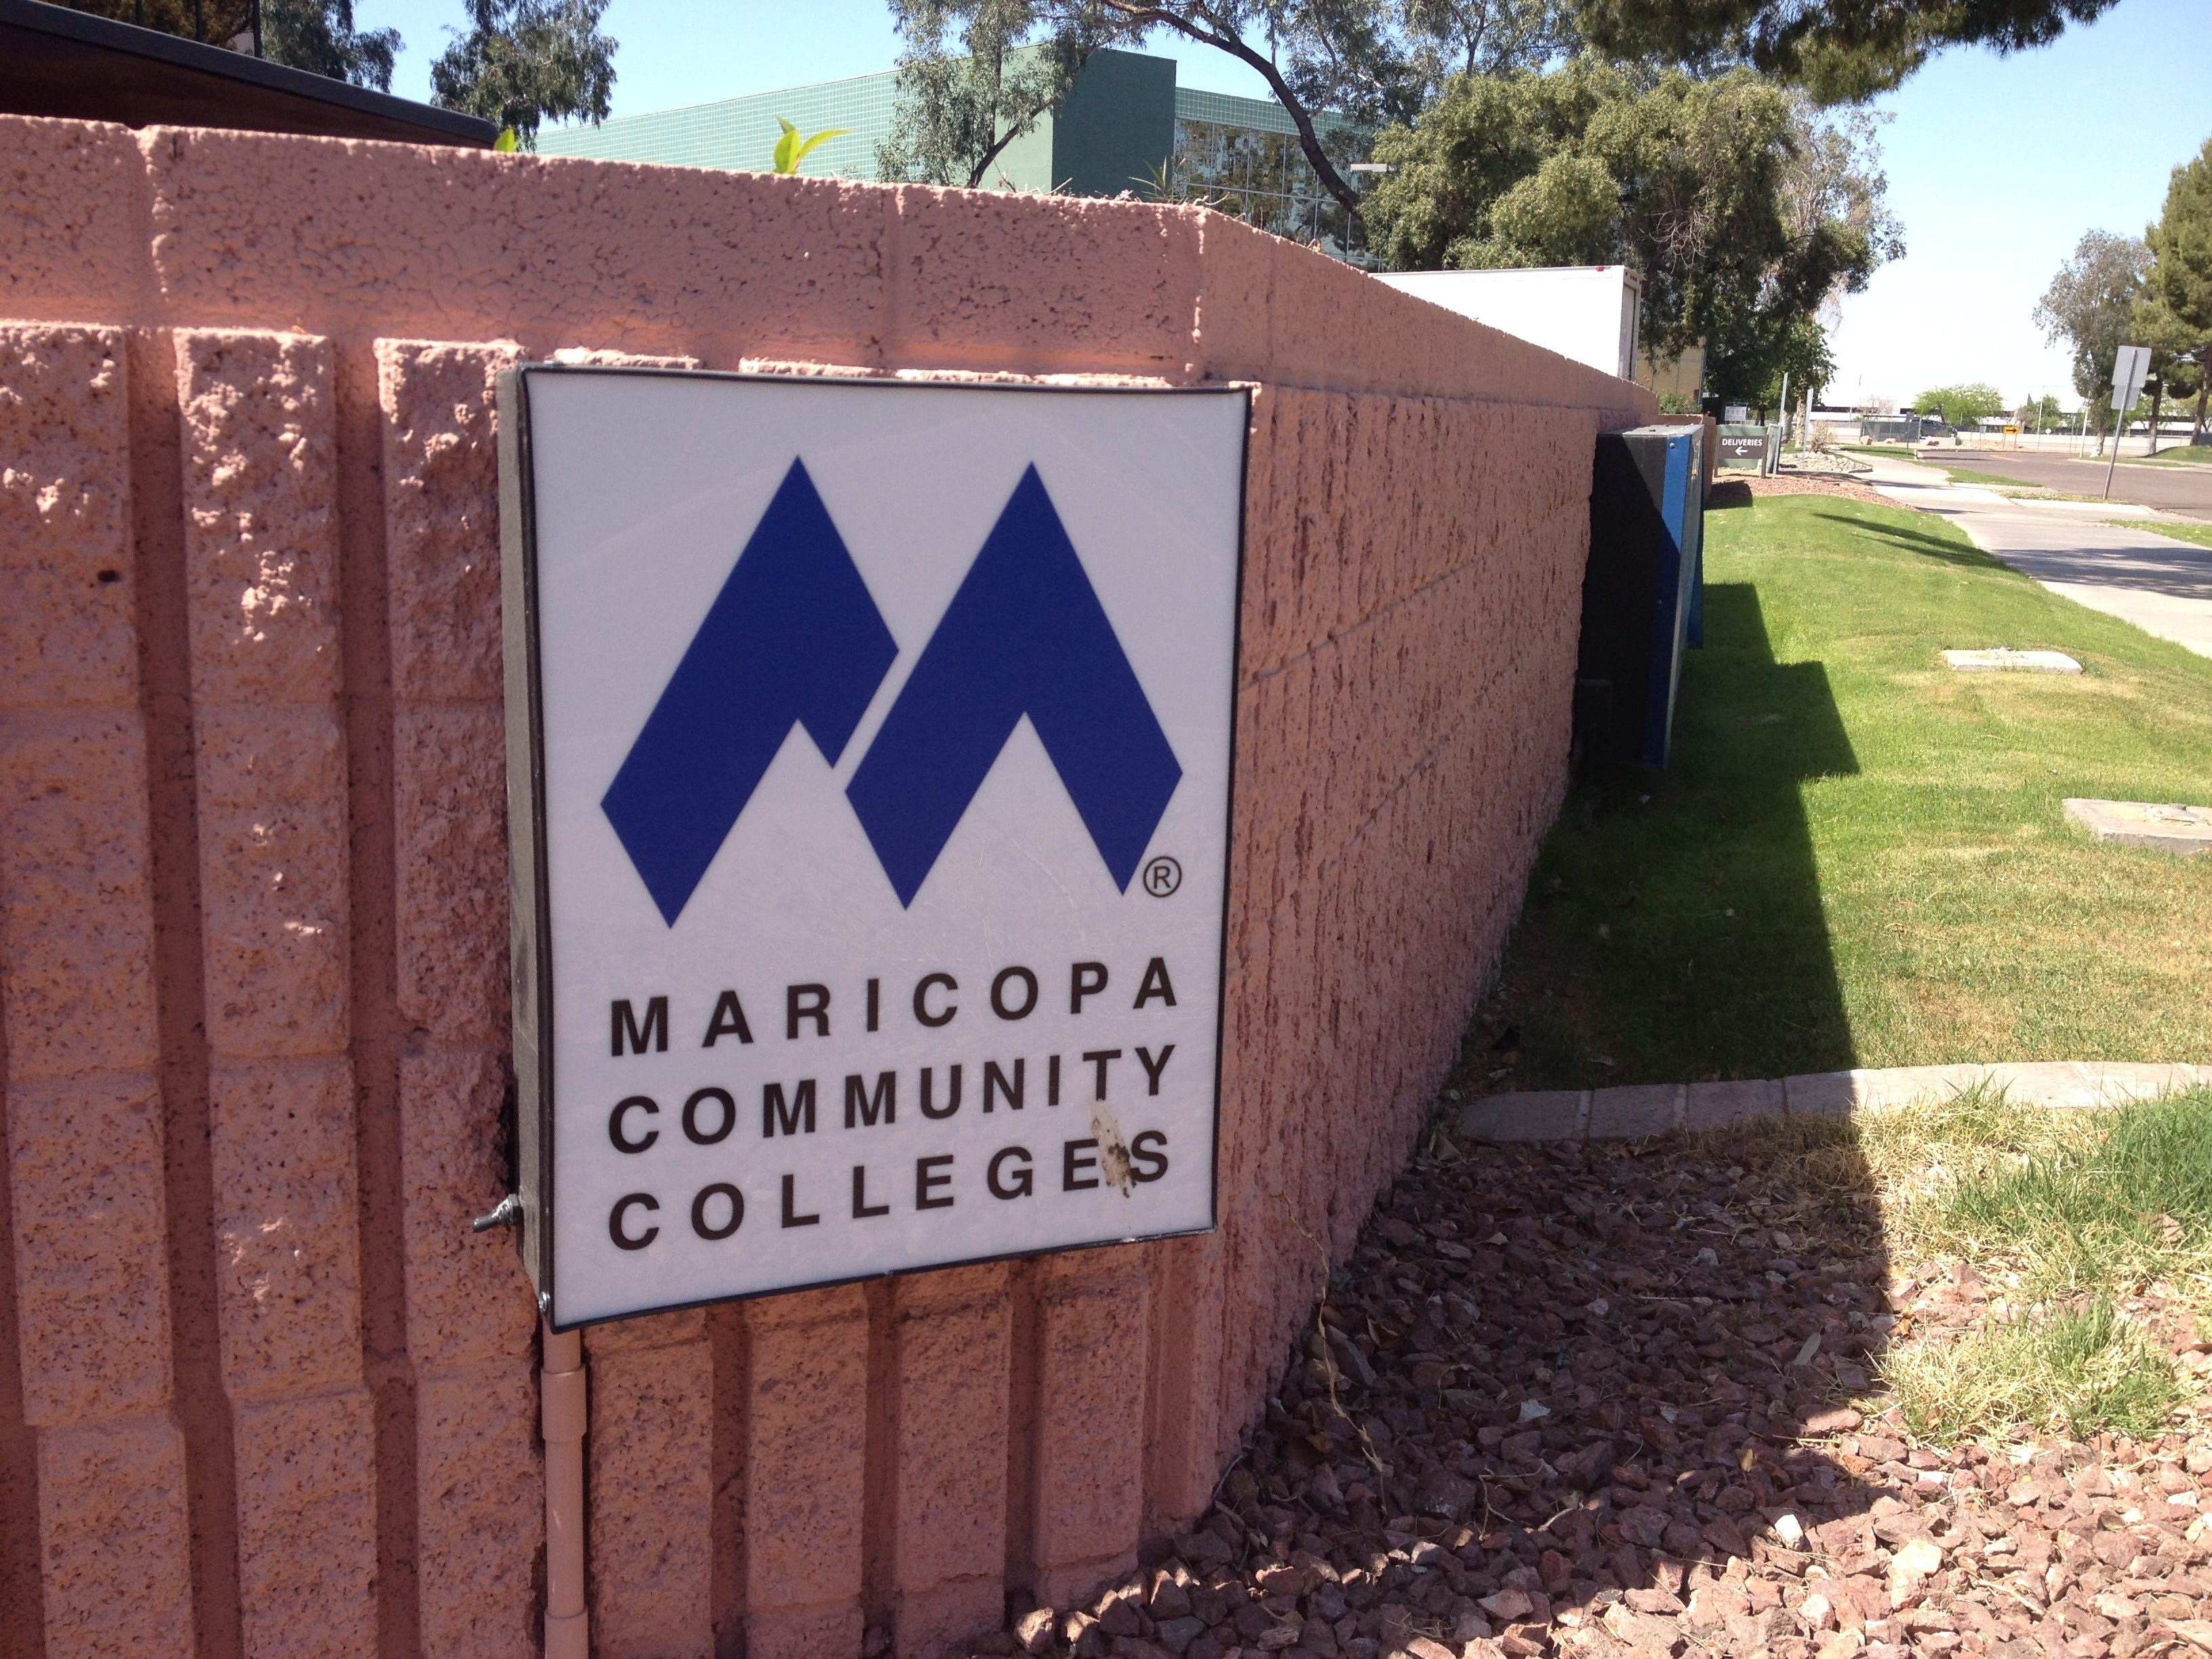 Maricopa Community Colleges, hiring 210. The school system has openings ranging from systems administrator to student-services specialist. More info: careers.maricopa.edu.